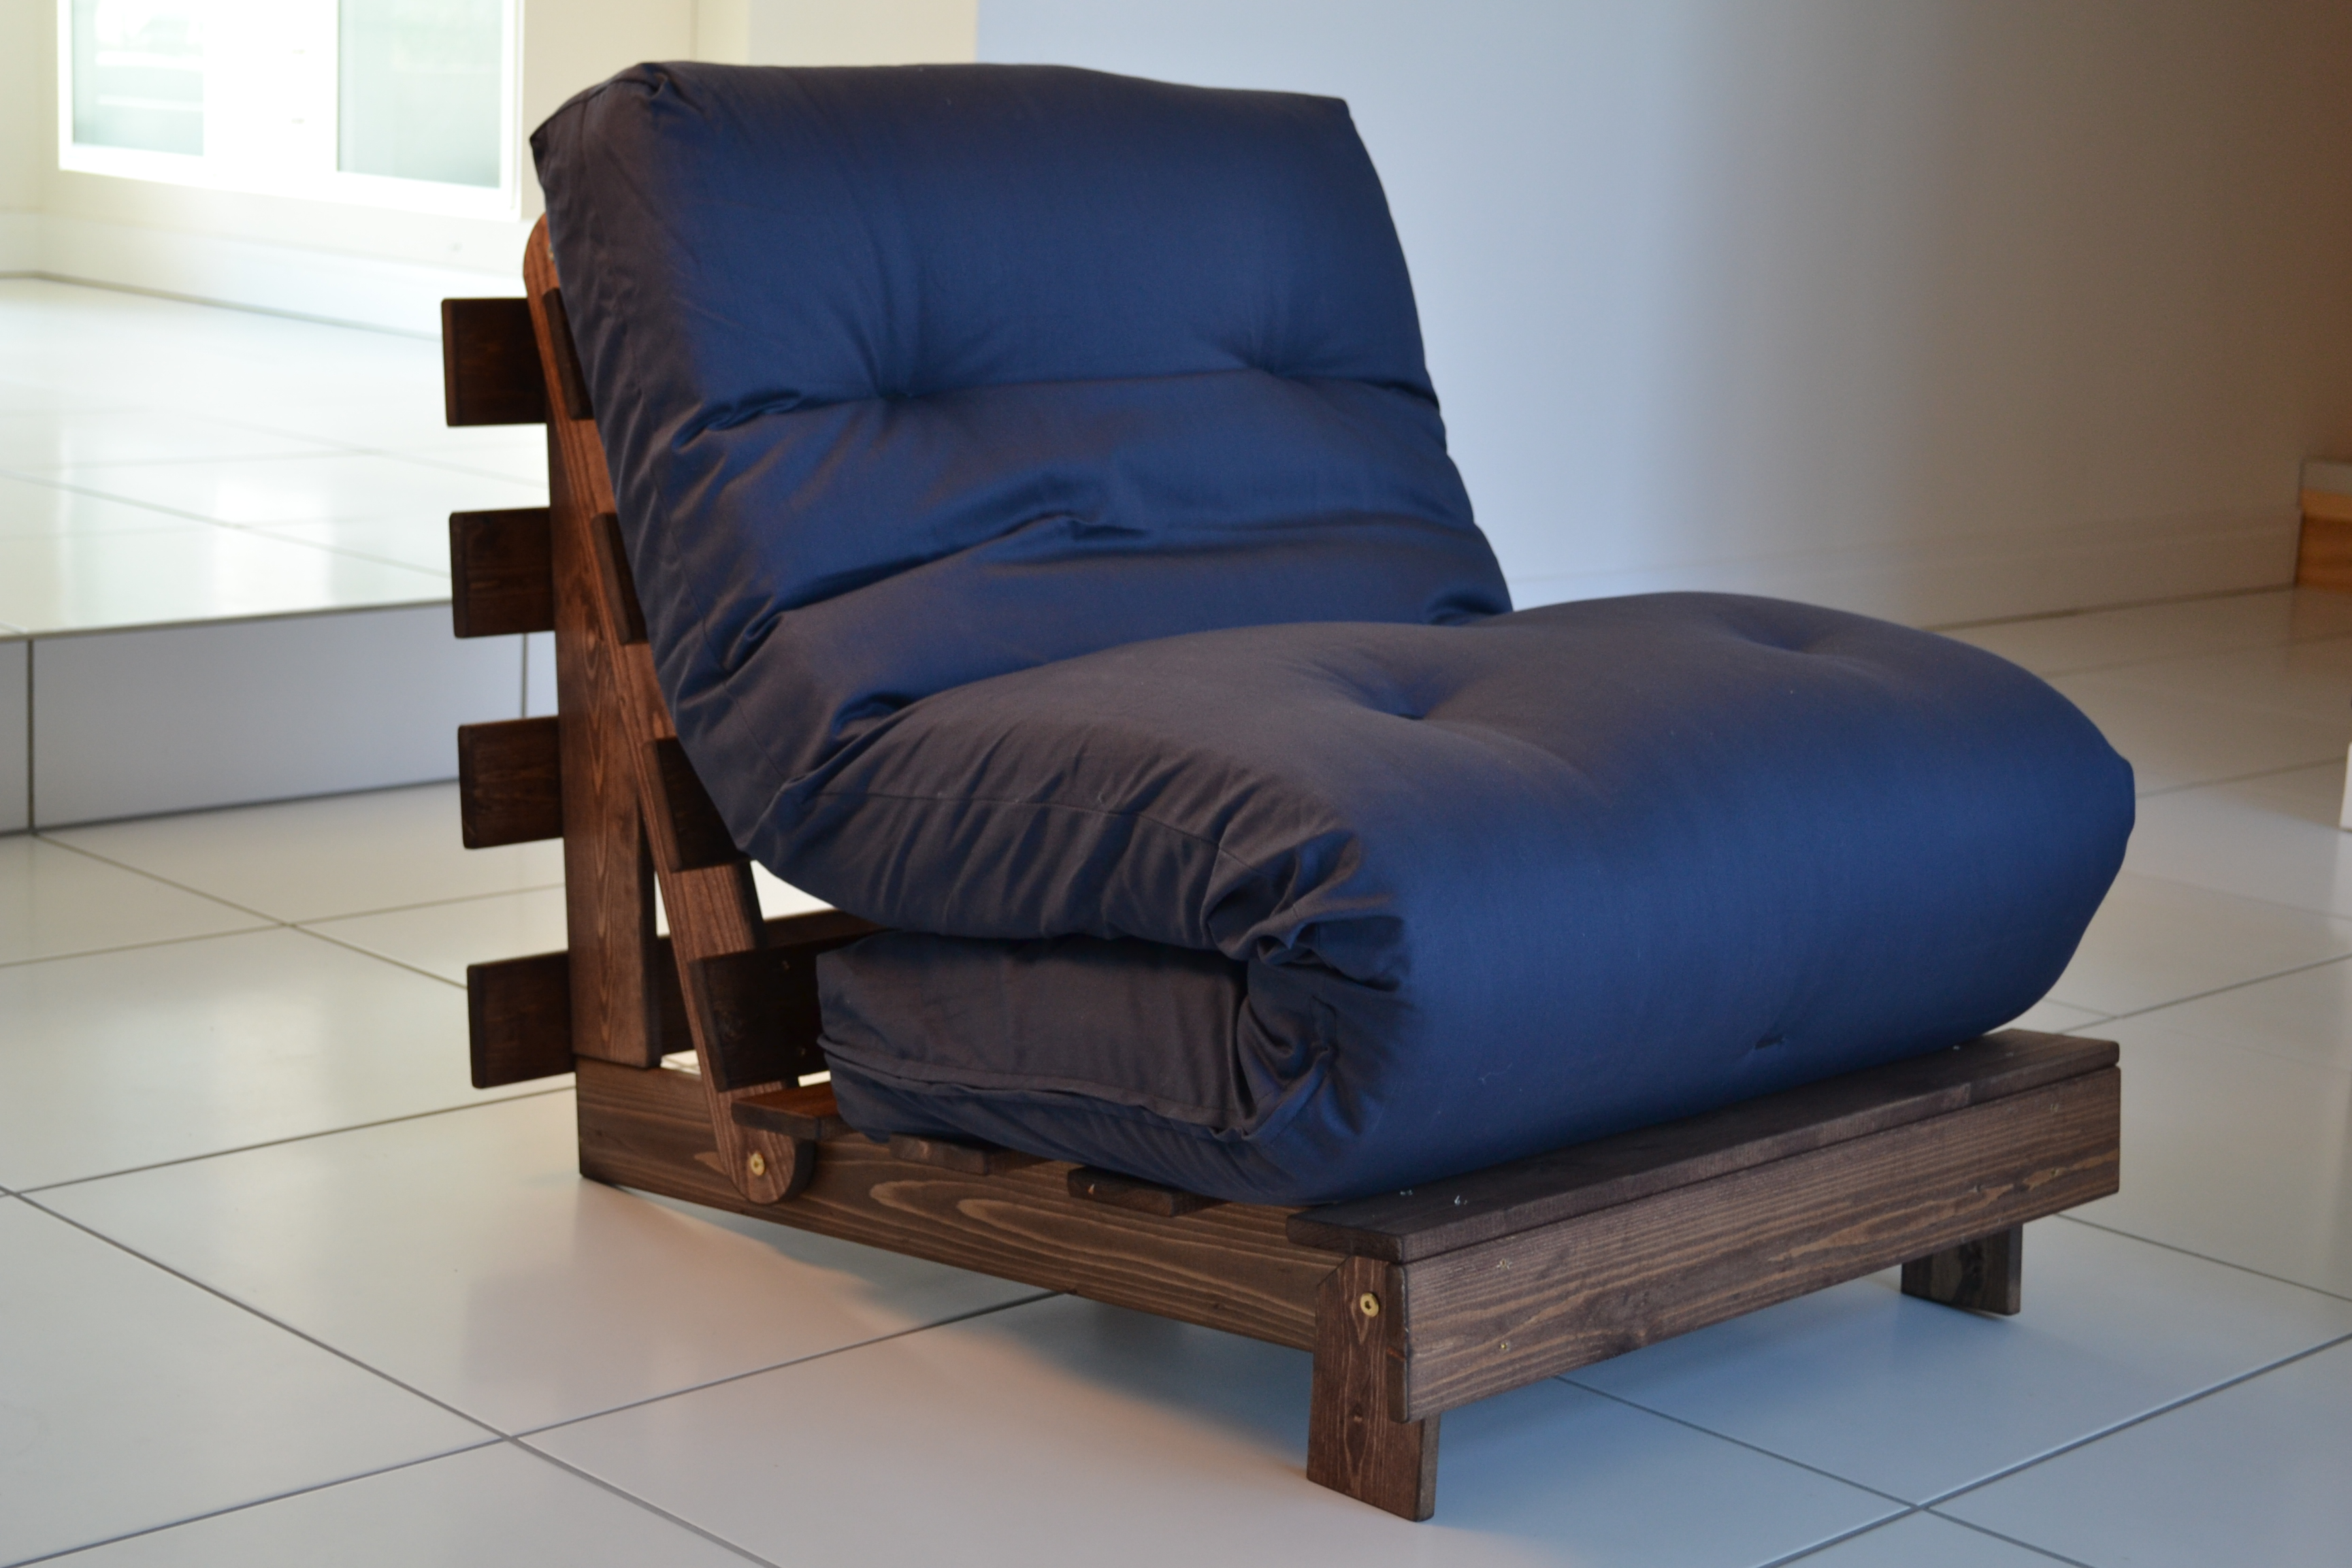 Charming A Blue Futon Folded Up Onto A Brown Diy Wood Pallet Chair Tips Sleeper Chair